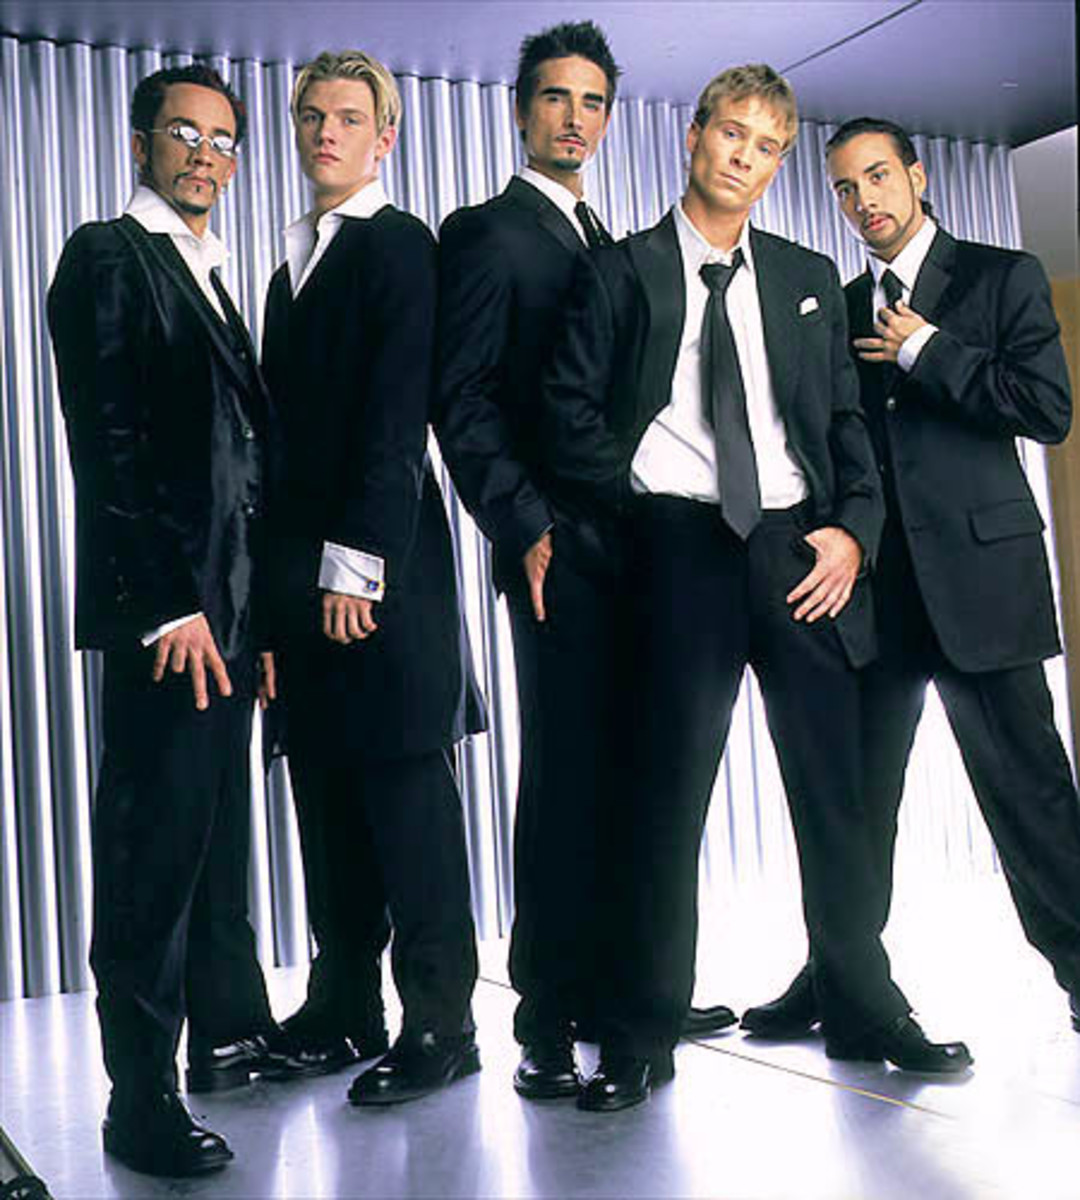 Open Letter to the Backstreet Boys